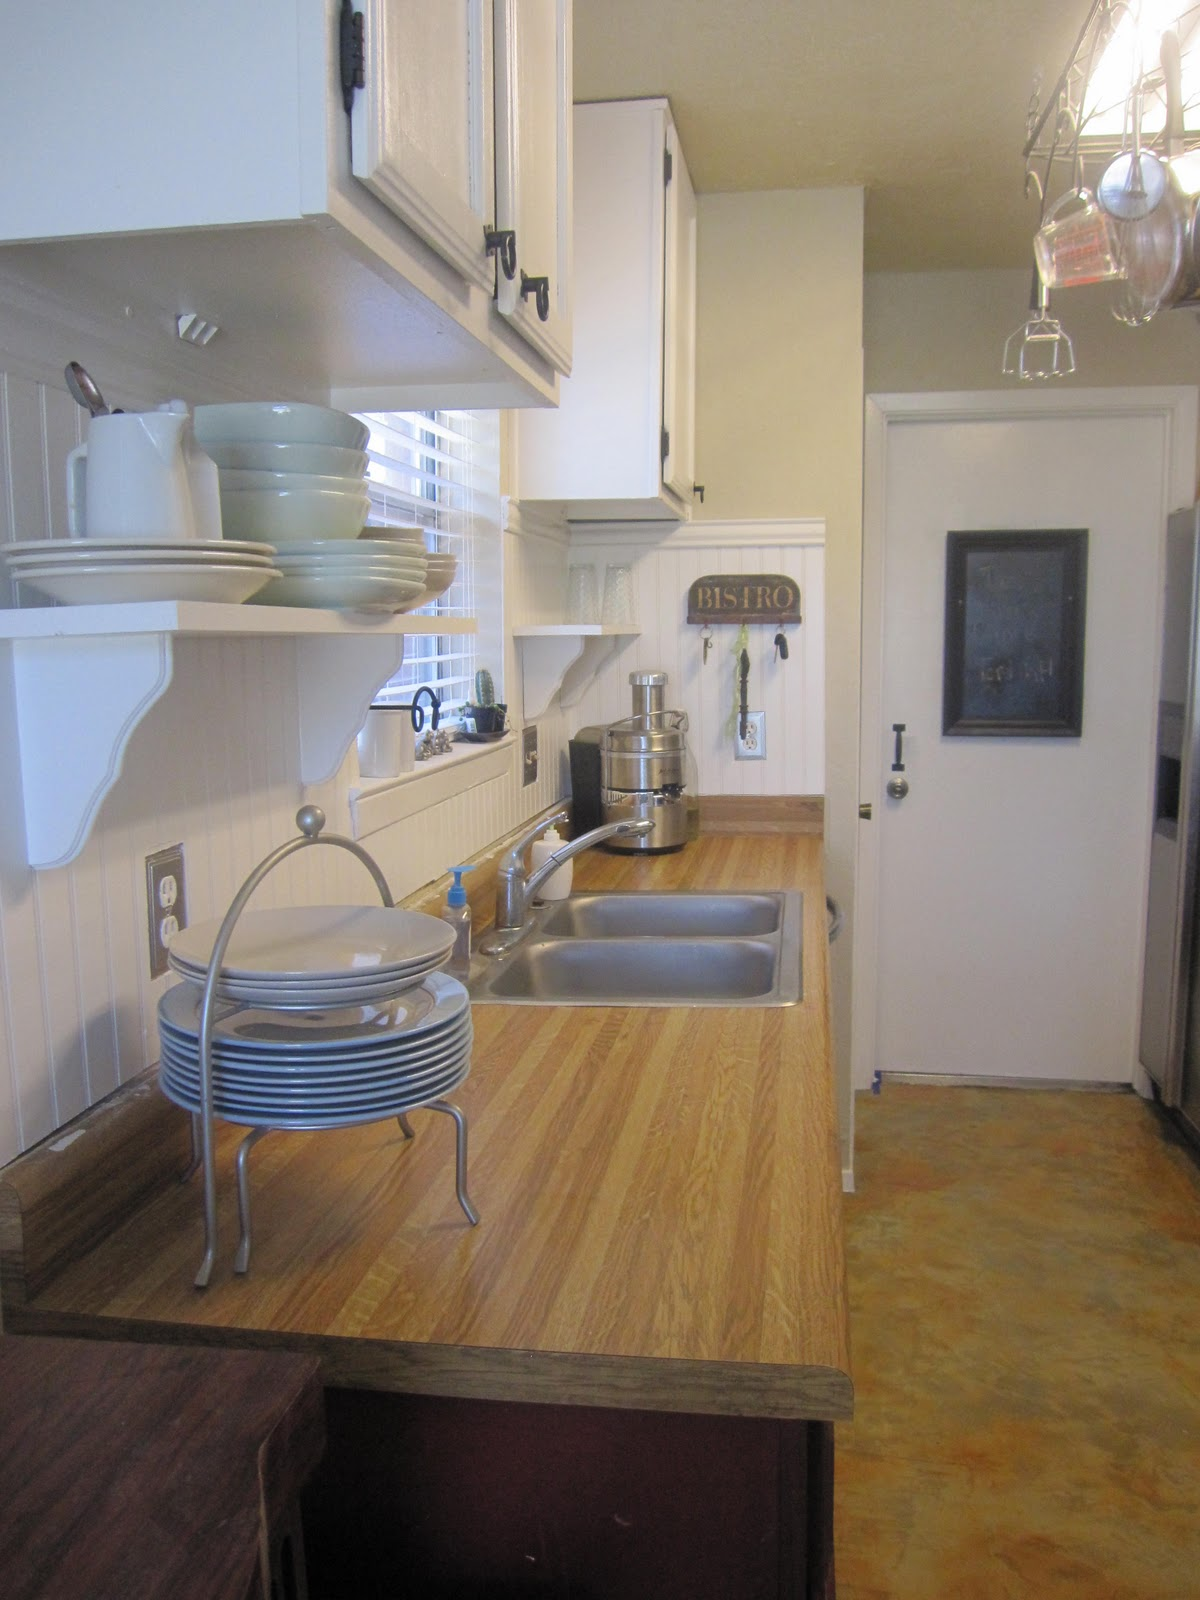 (Before) How to Make Faux Butcher Block Countertops